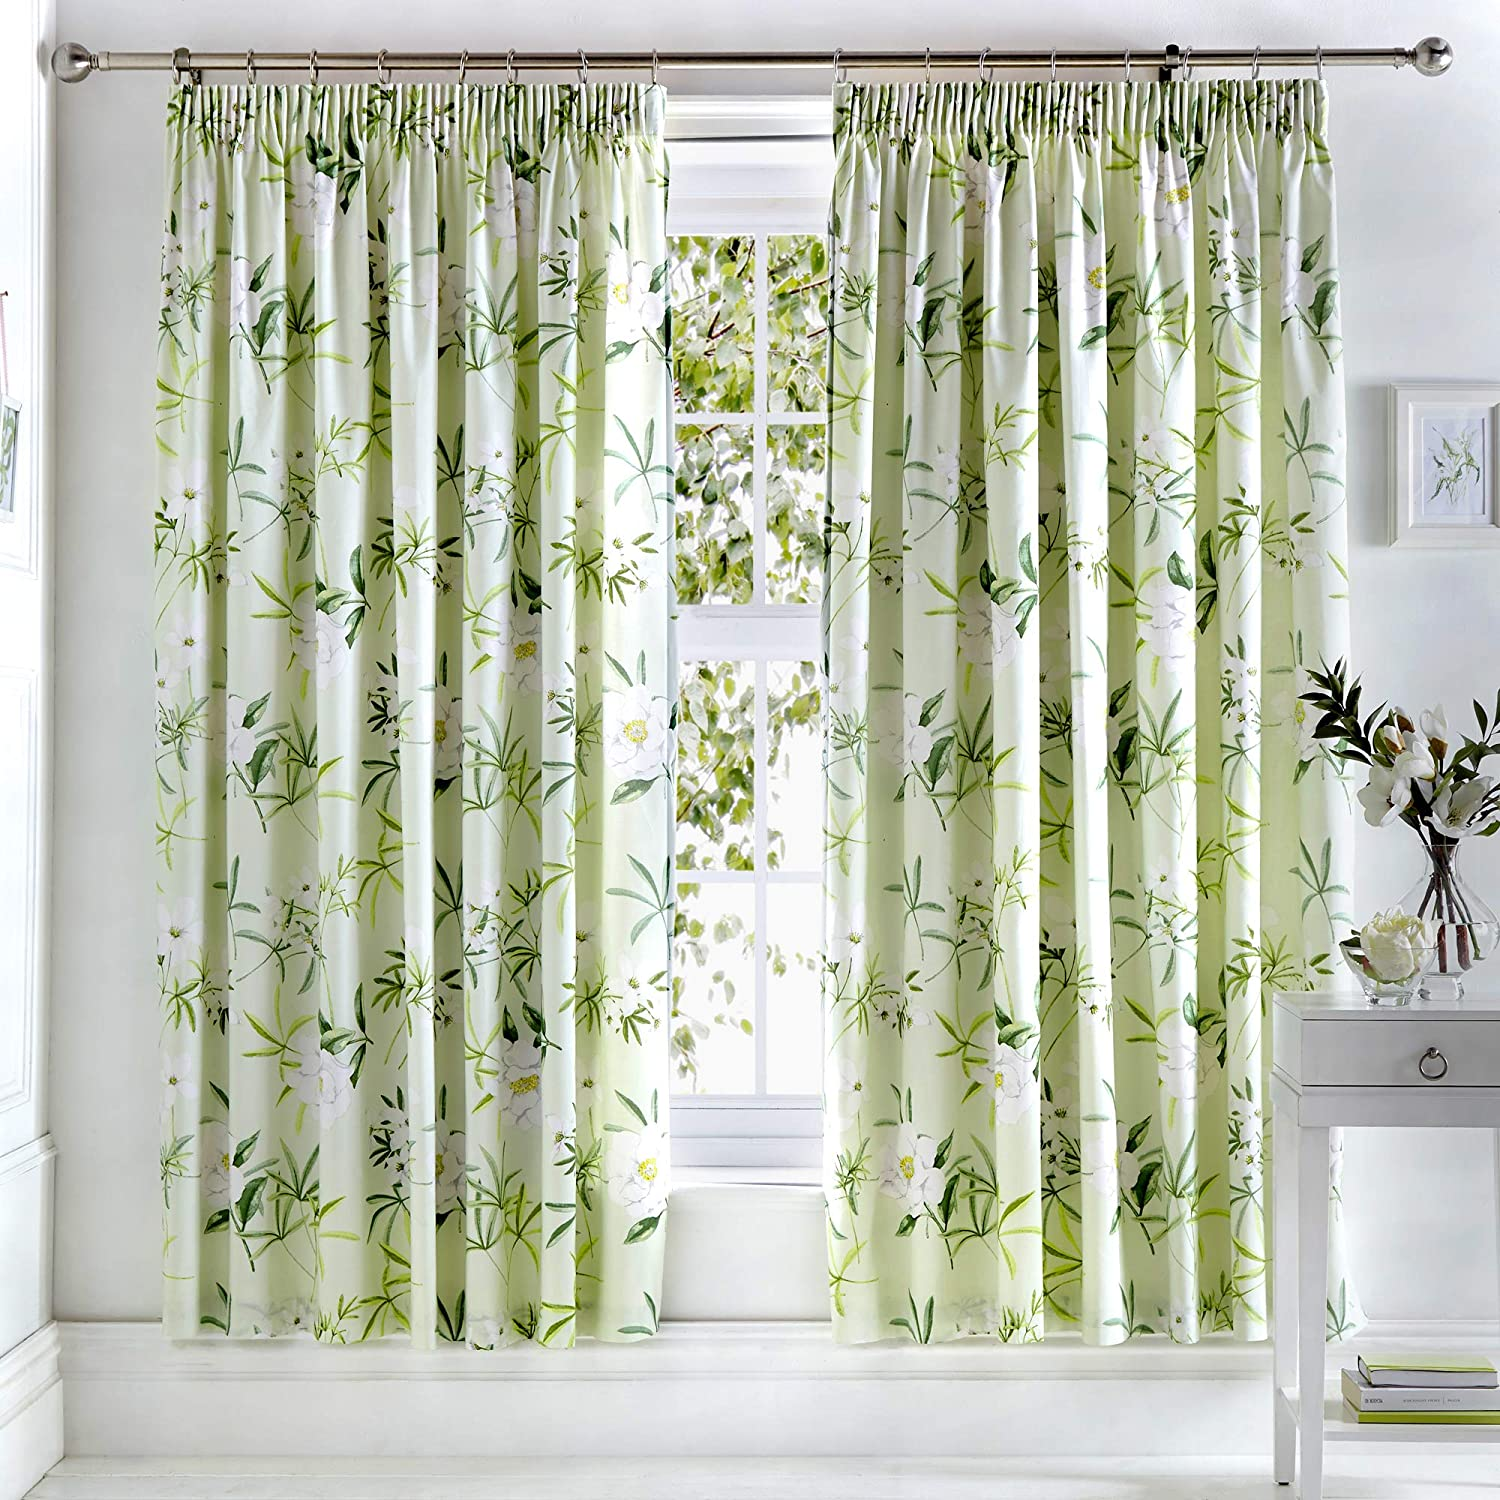 """Dreams & Drapes - Florence - Ready Made Lined Pencil Pleat Curtains - 66"""" Width x 72"""" Drop (168 x 183cm) in Green Green Curtains: 66"""" Width x 72"""" Drop (168 x 183cm)"""